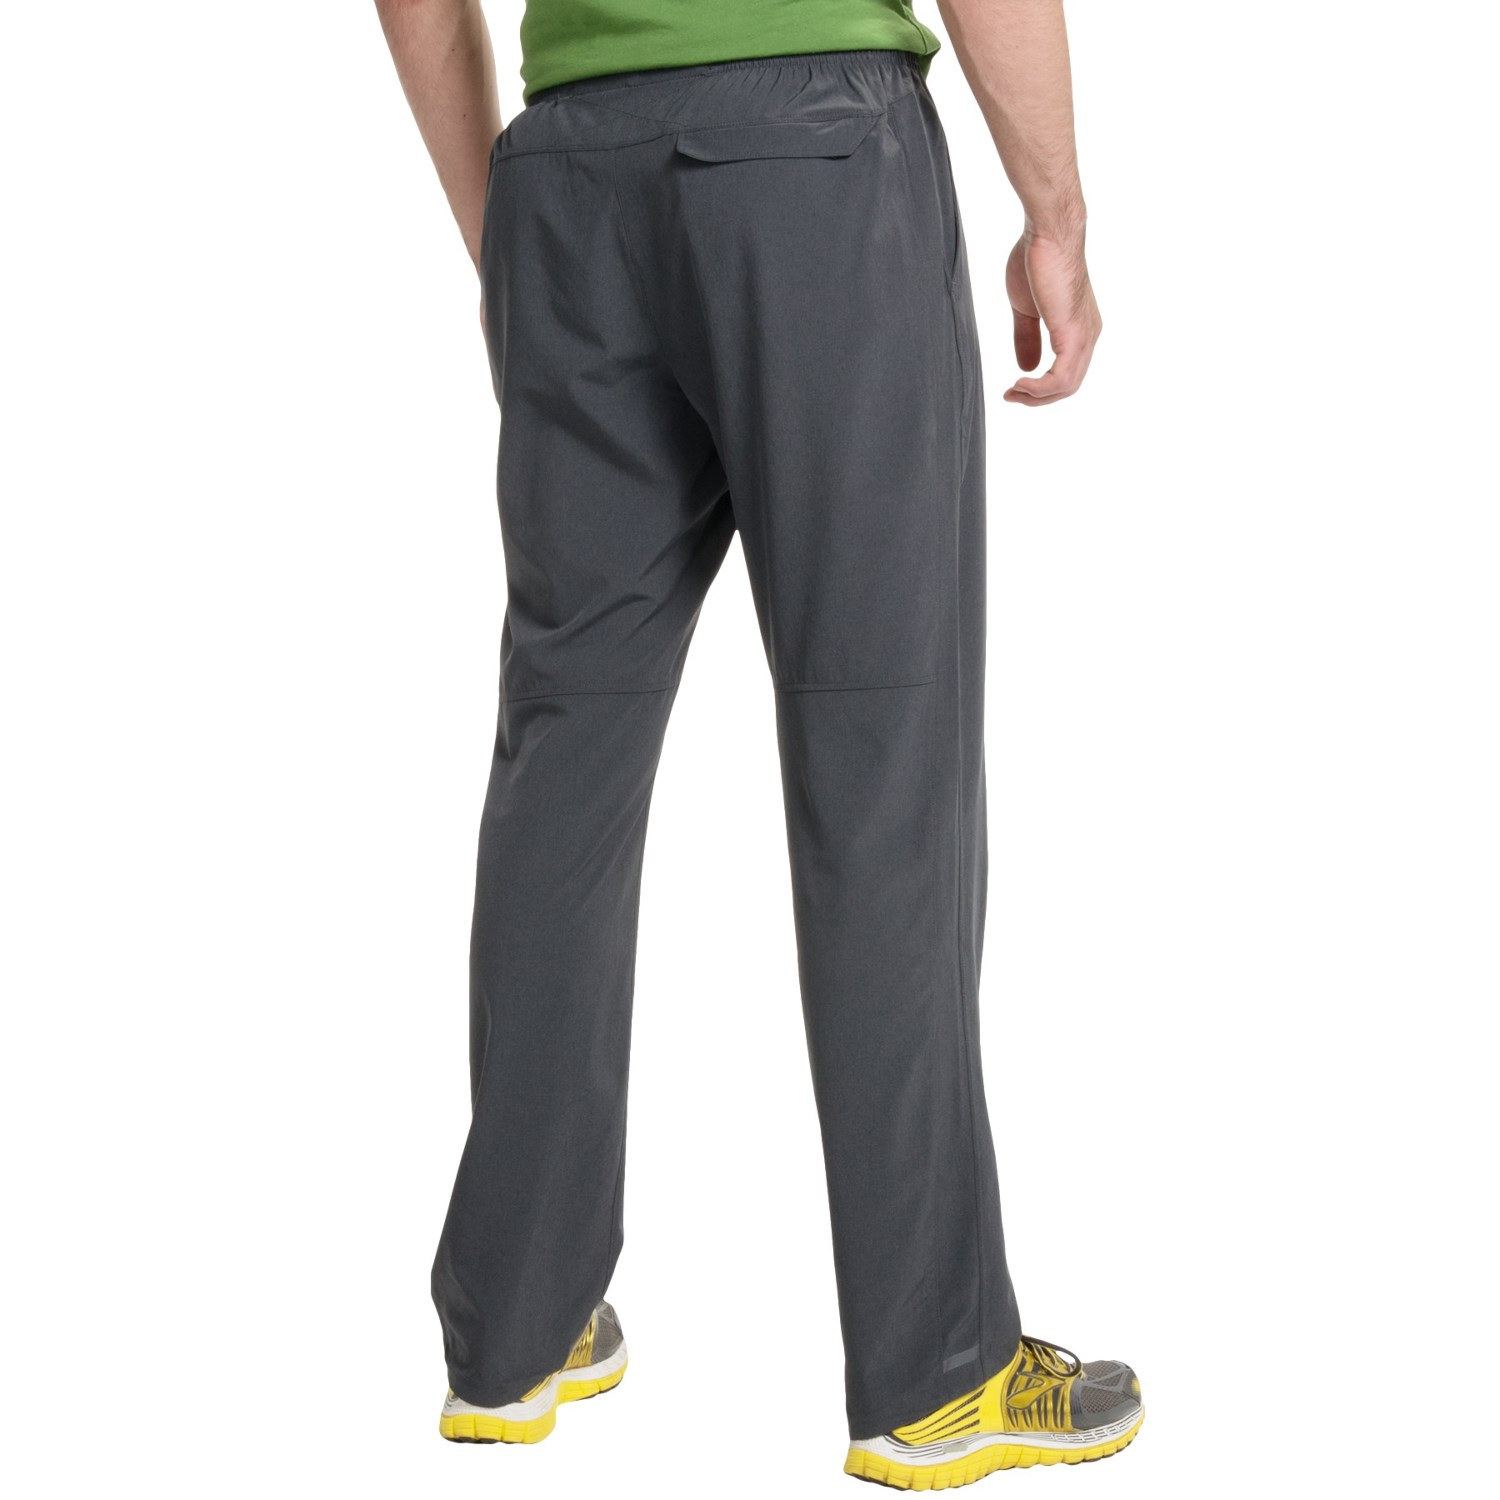 Men's Workout Pants. Push past your expectations in men's workout and running pants from New Balance. We've got you covered on game day with our sweatpants for men offering a looser fit for warmups, to our men's performance running tights, giving you the sleek compression you need to outpace the competition.